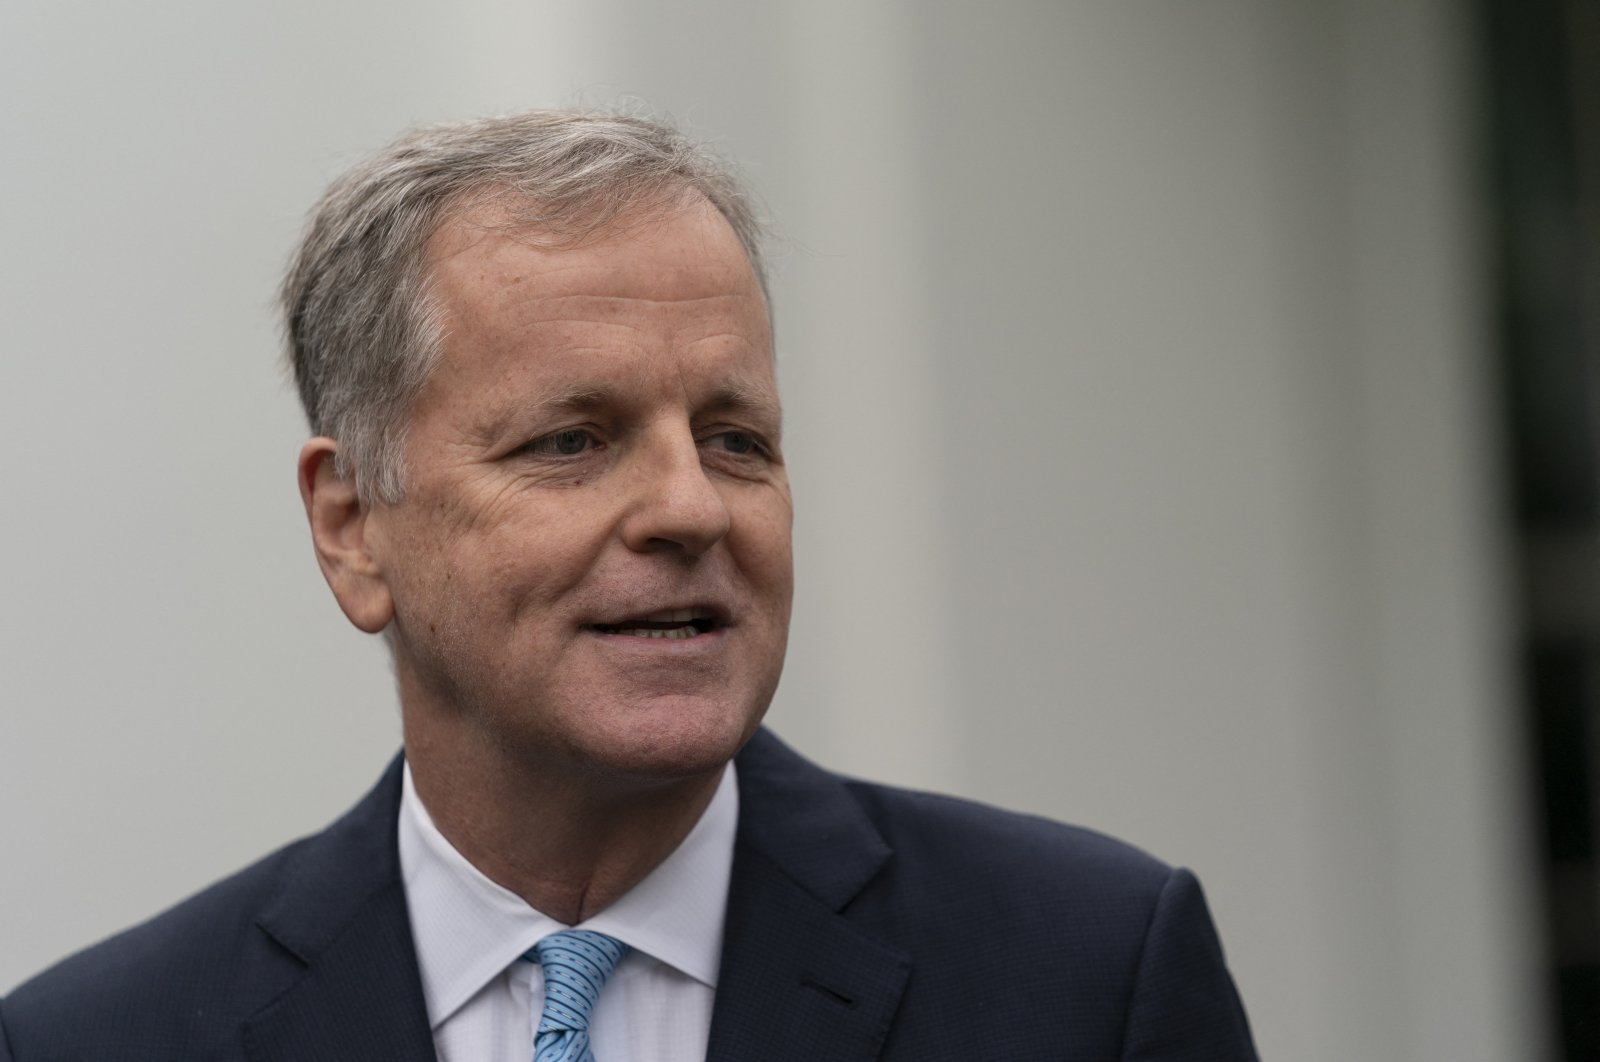 American Airlines CEO Doug Parker speaks to reporters alongside other airline executives outside the White House in Washington, U.S., Sept. 17, 2020. (Reuters Photo)